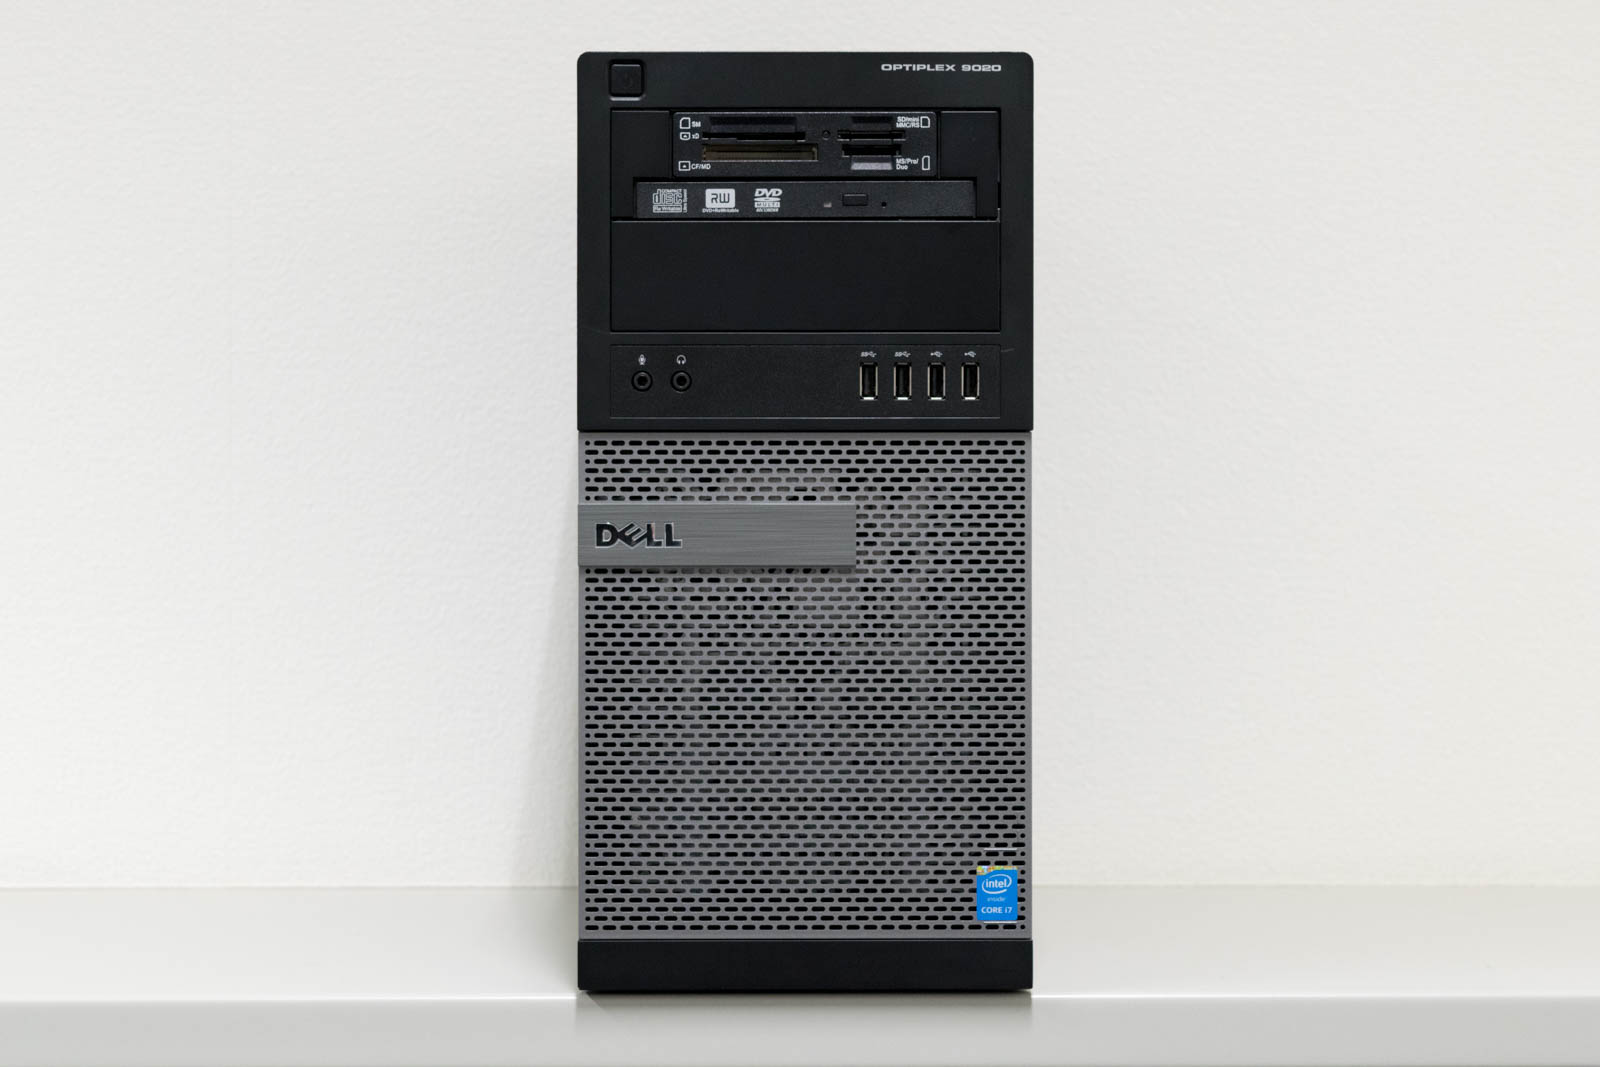 DELL OptiPlex 9020 MT(ミニタワー), Windows 8.1 Pro 64bit, Core i7-4790, メモリ32GB(8GBx4), 256GB SSD + 1TB HDD, GeForce GTX745 4GB 【中古】